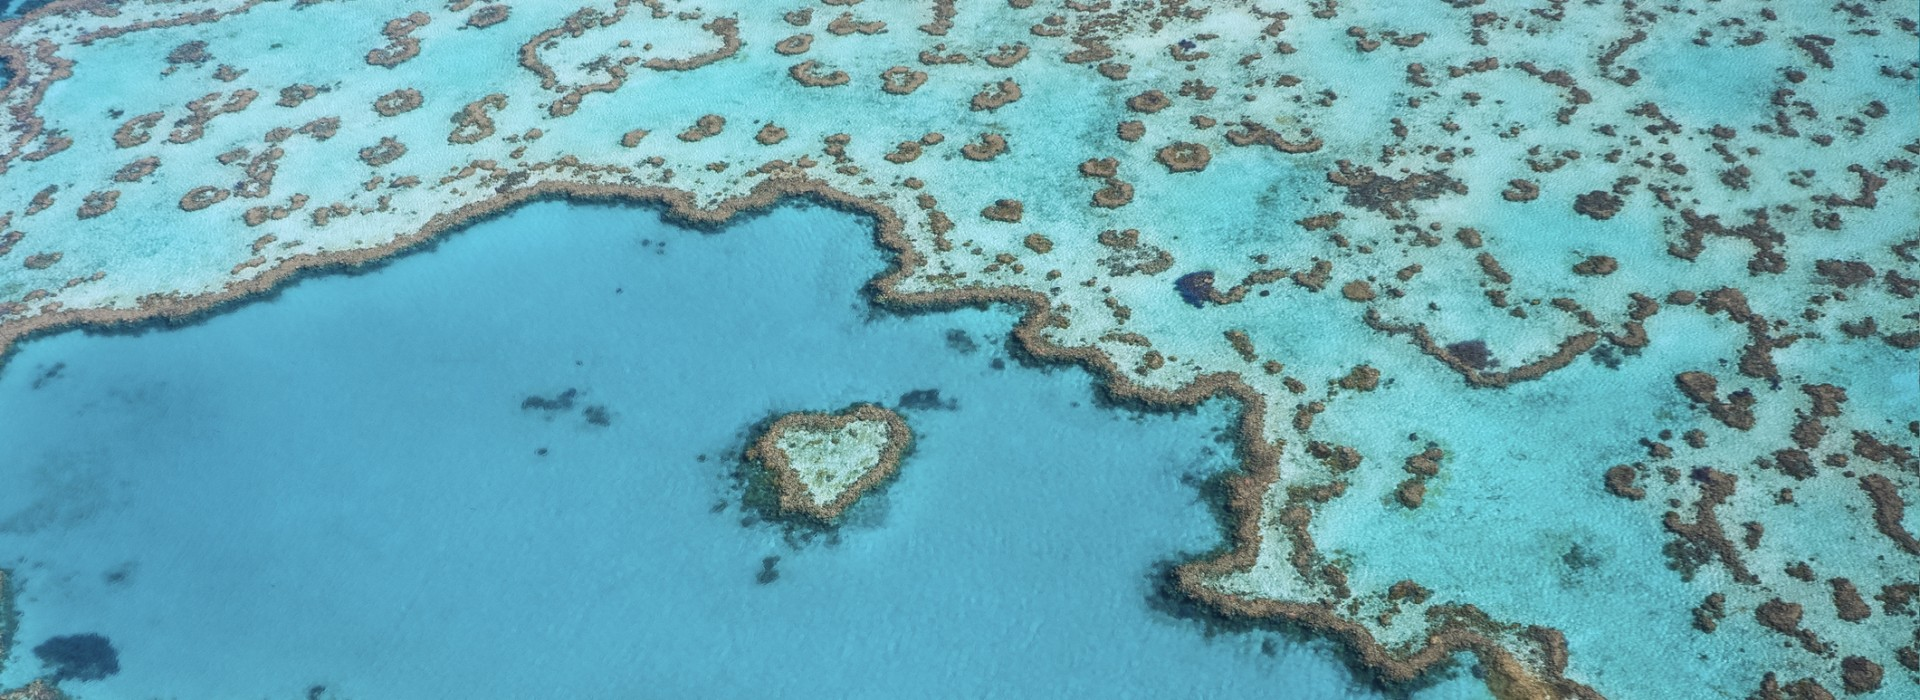 Go on a romantic holiday in Whitsundays and visit the Heart Reef.